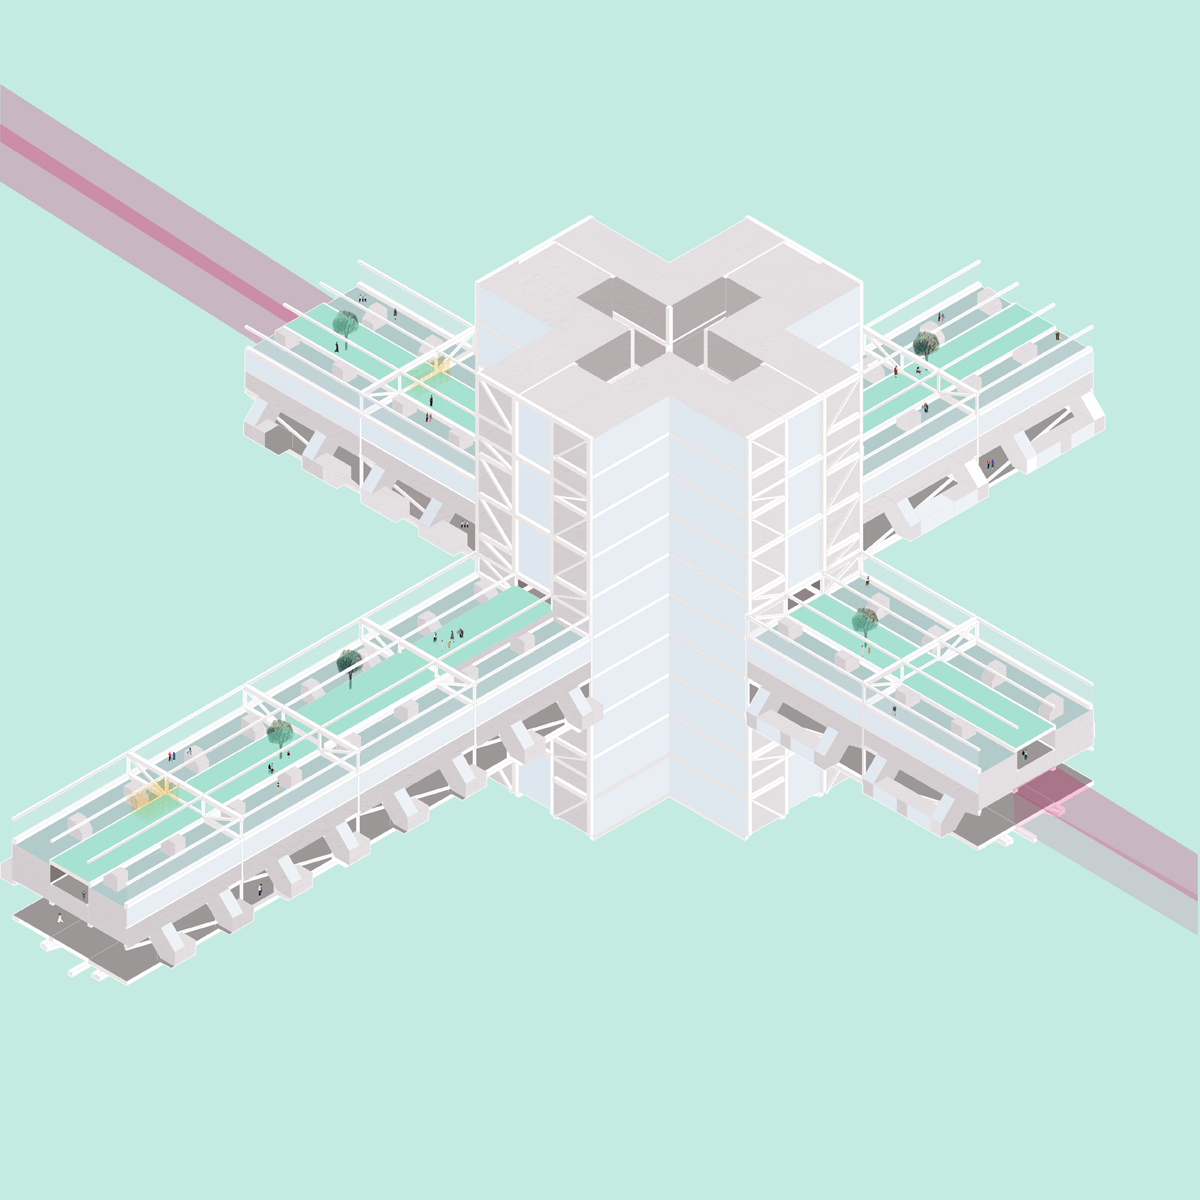 Isometric drawing of a node cluster linking together a new lifted urban infrastructure in Phoenix by student Amy Dicker